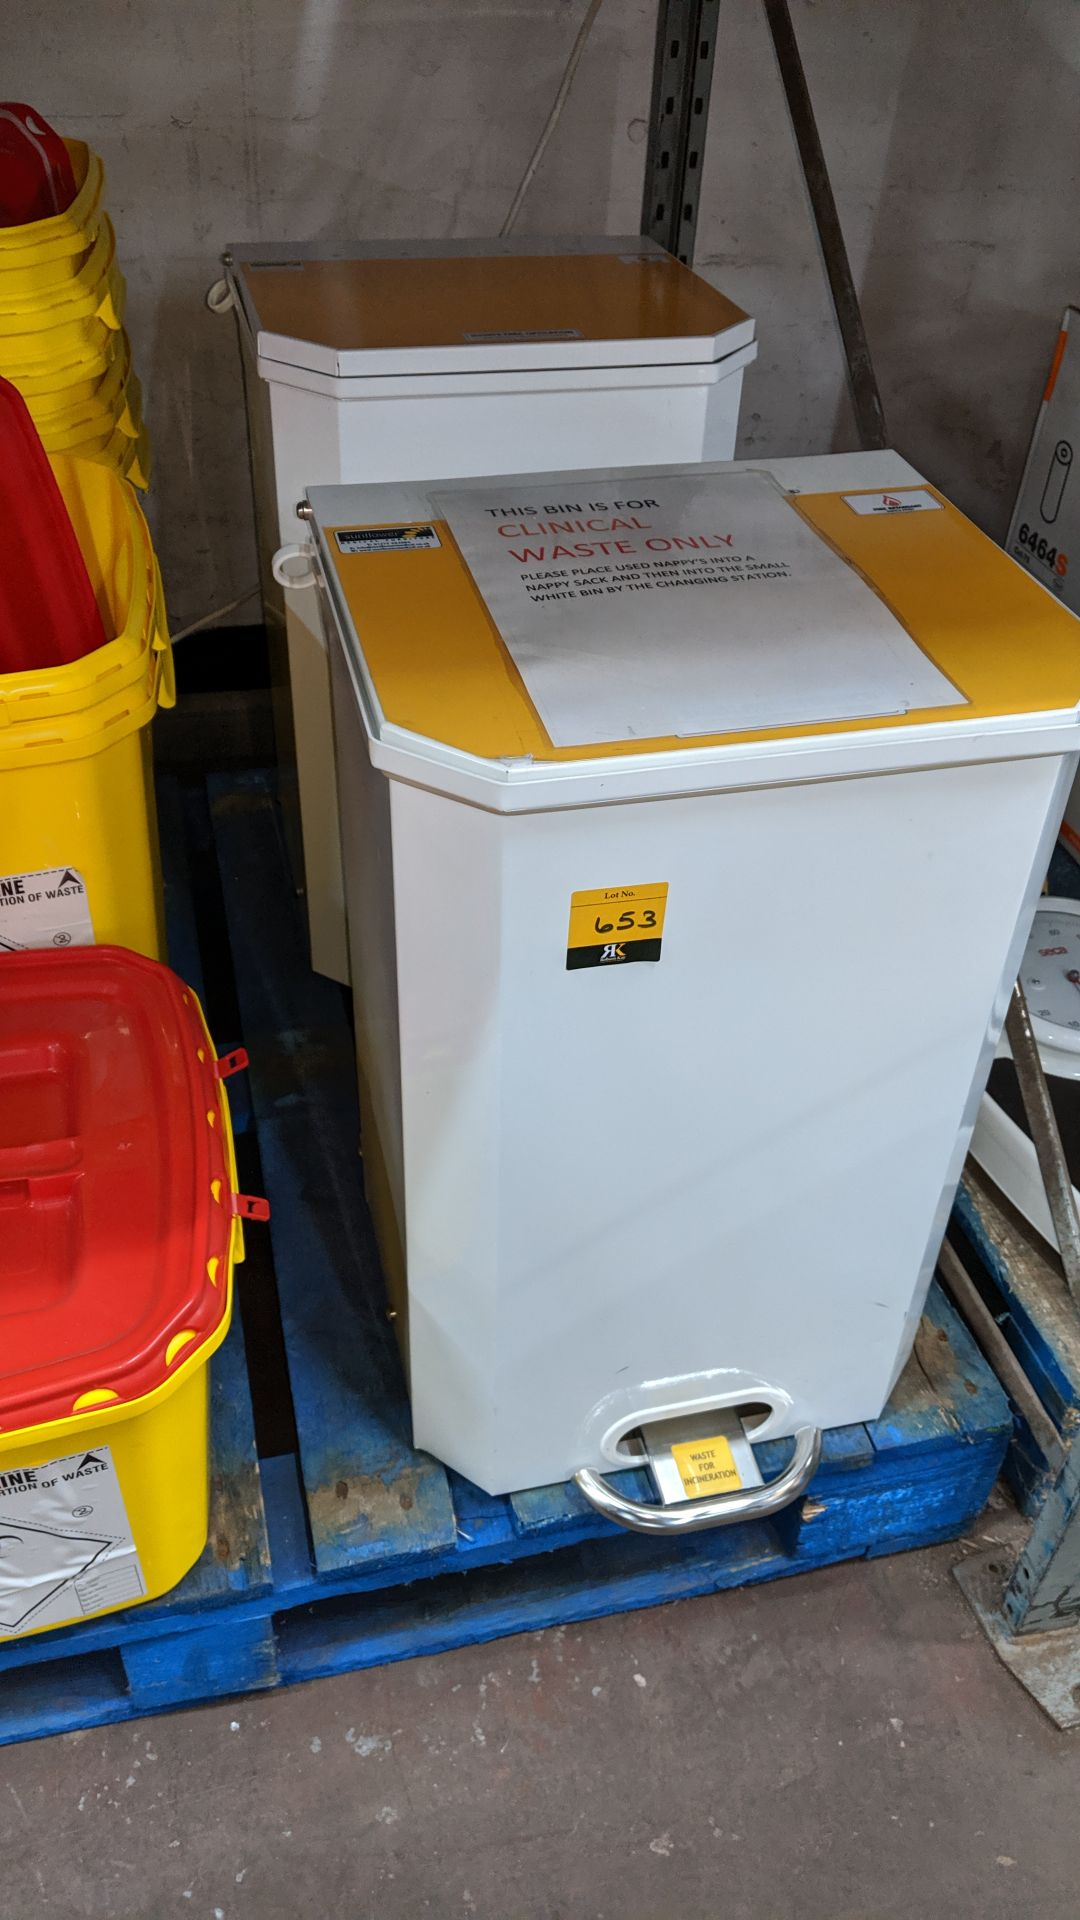 Lot 653 - 2 off metal pedal bins. This is one of a large number of lots used/owned by One To One (North